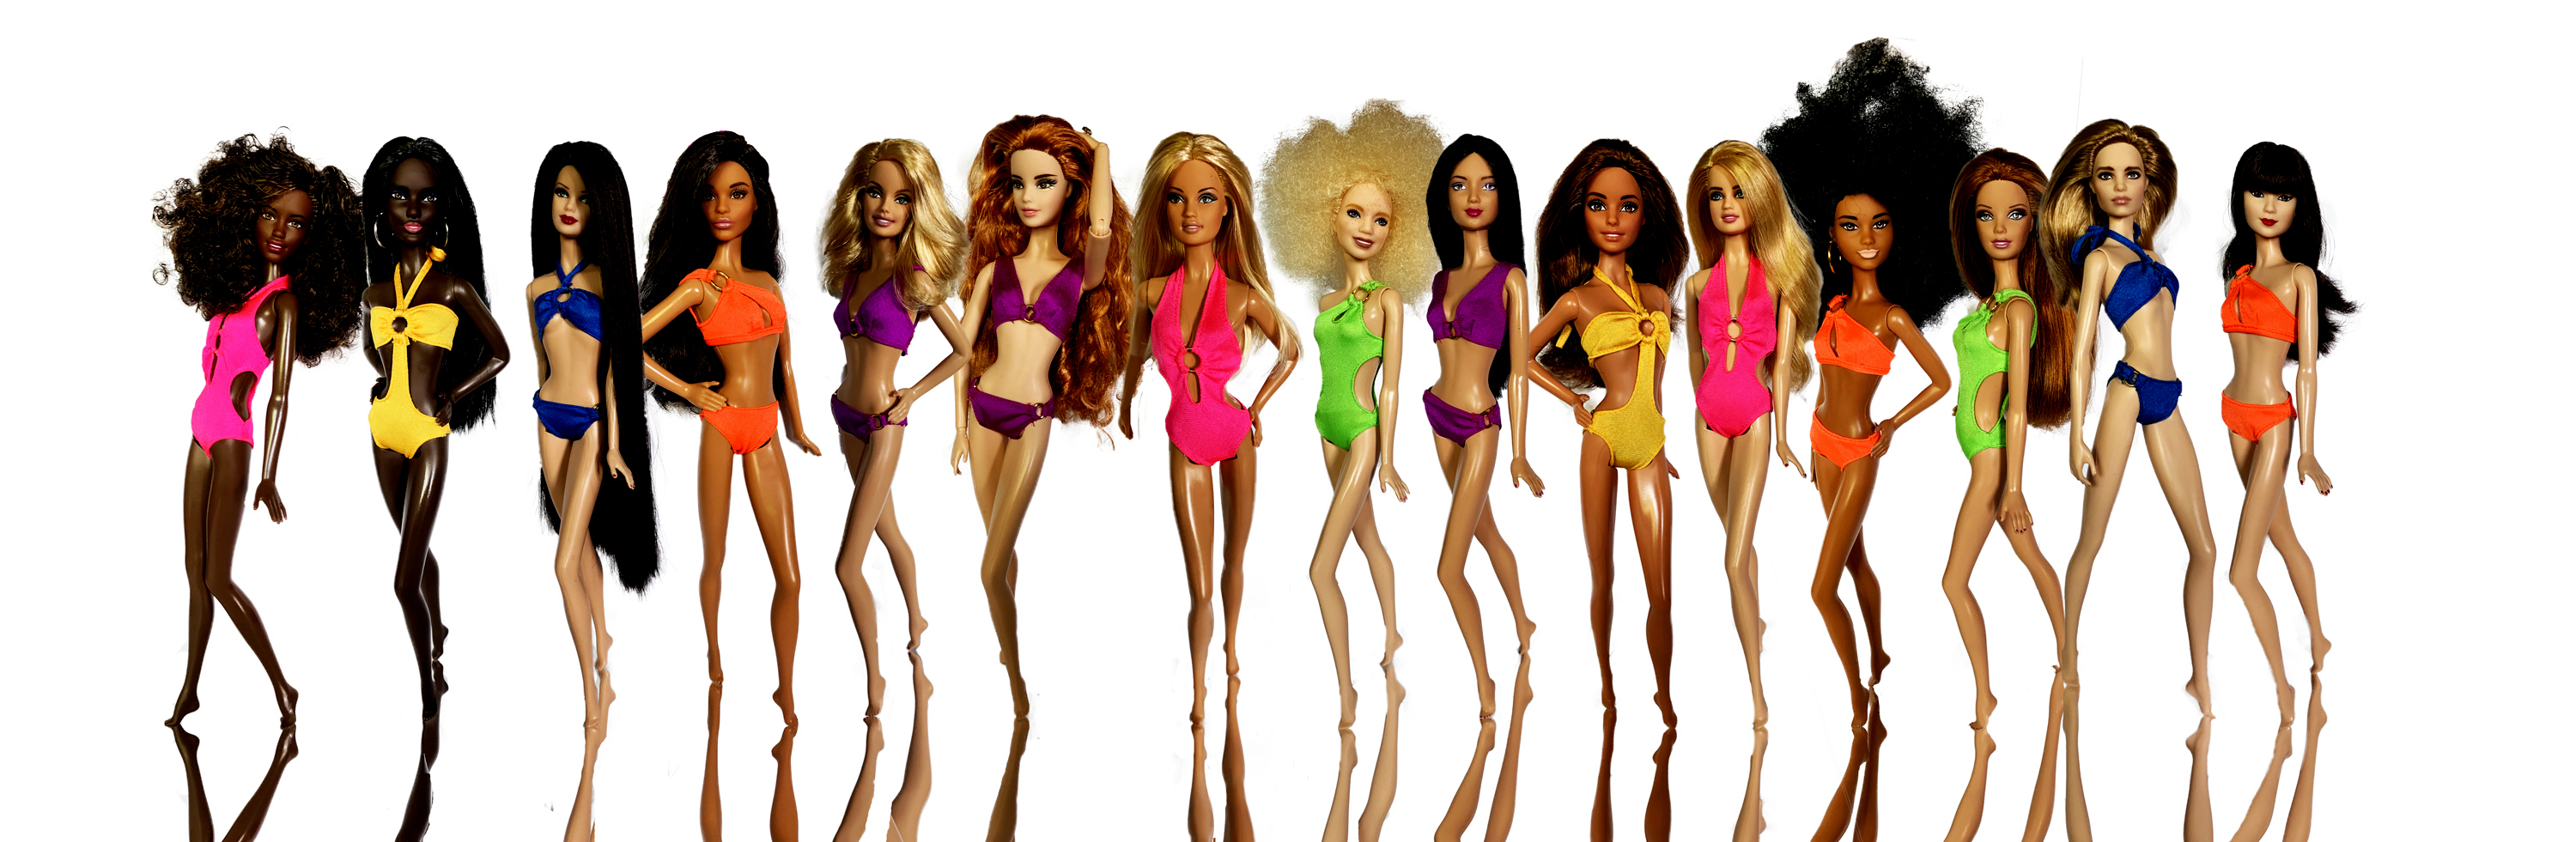 Barbie's Next Top Model